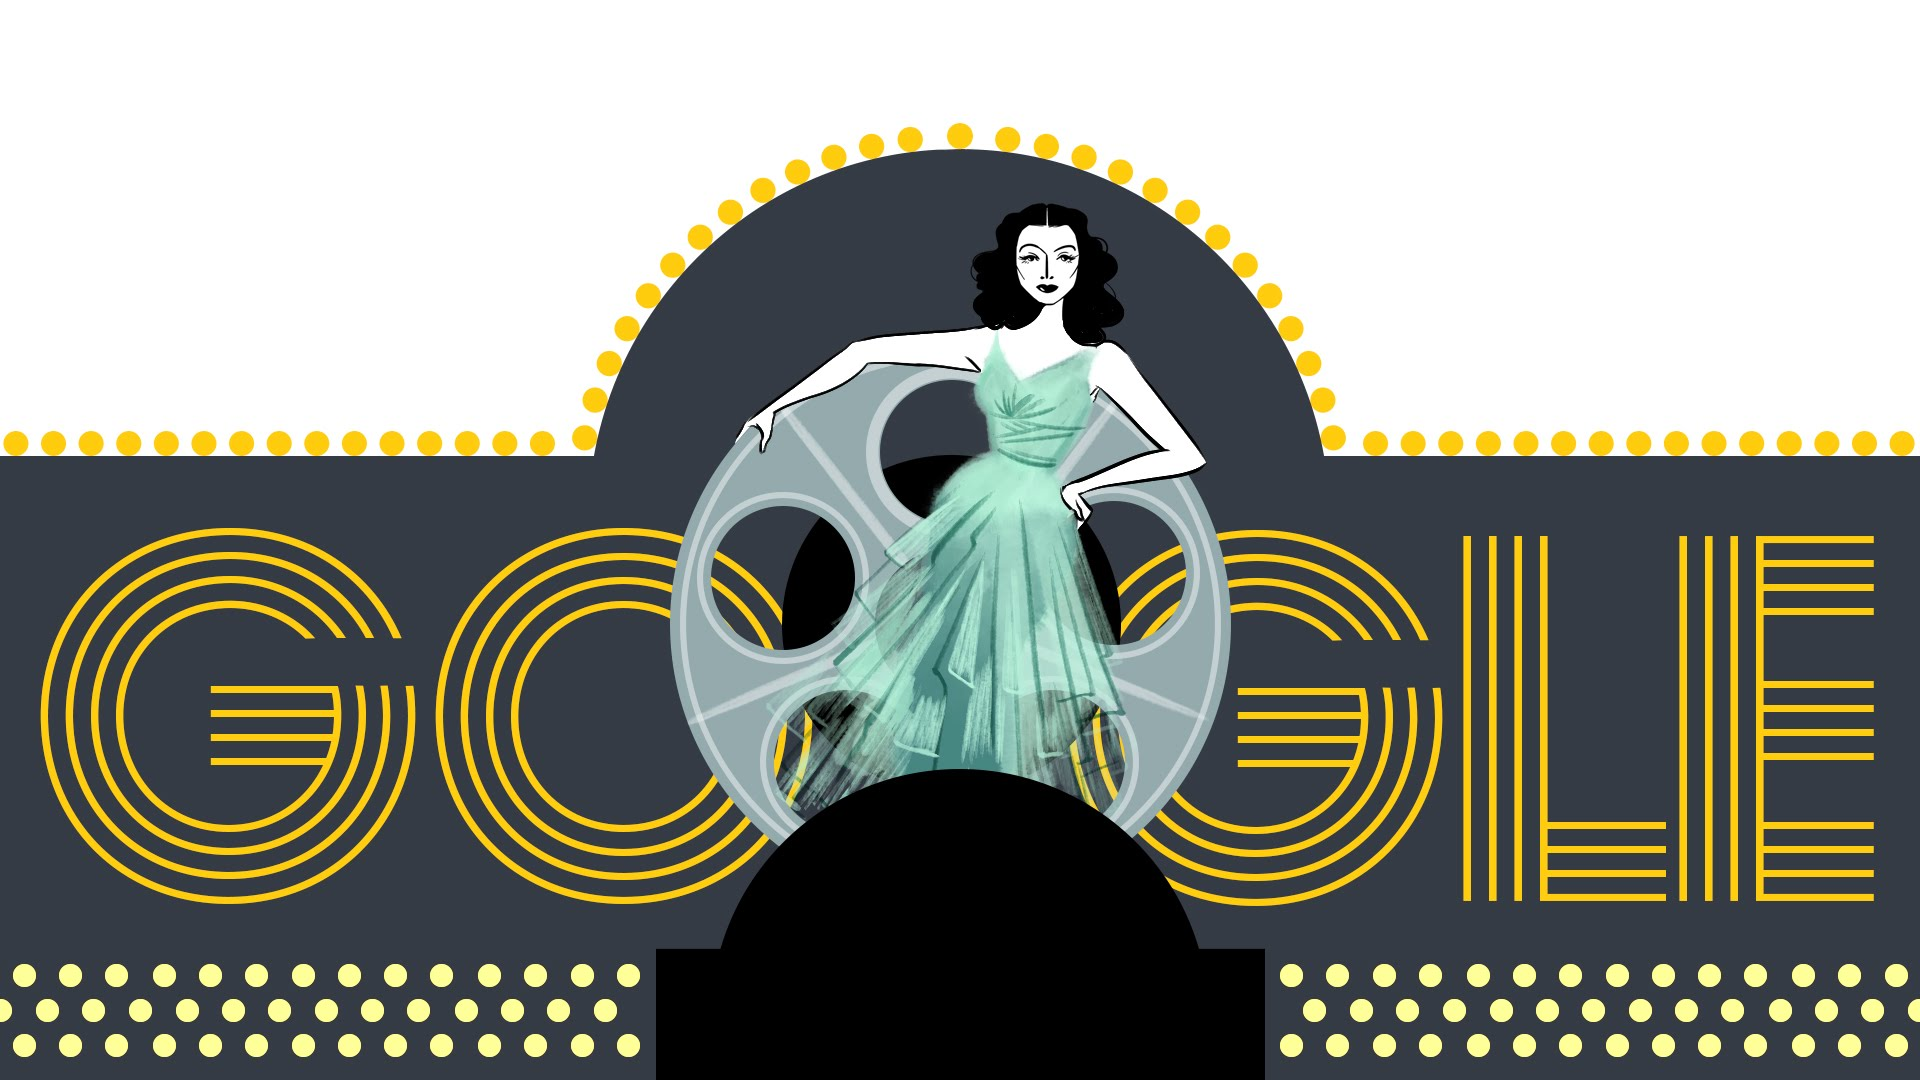 Google celebrates Hedy Lamarr who is behind how Bluetooth works